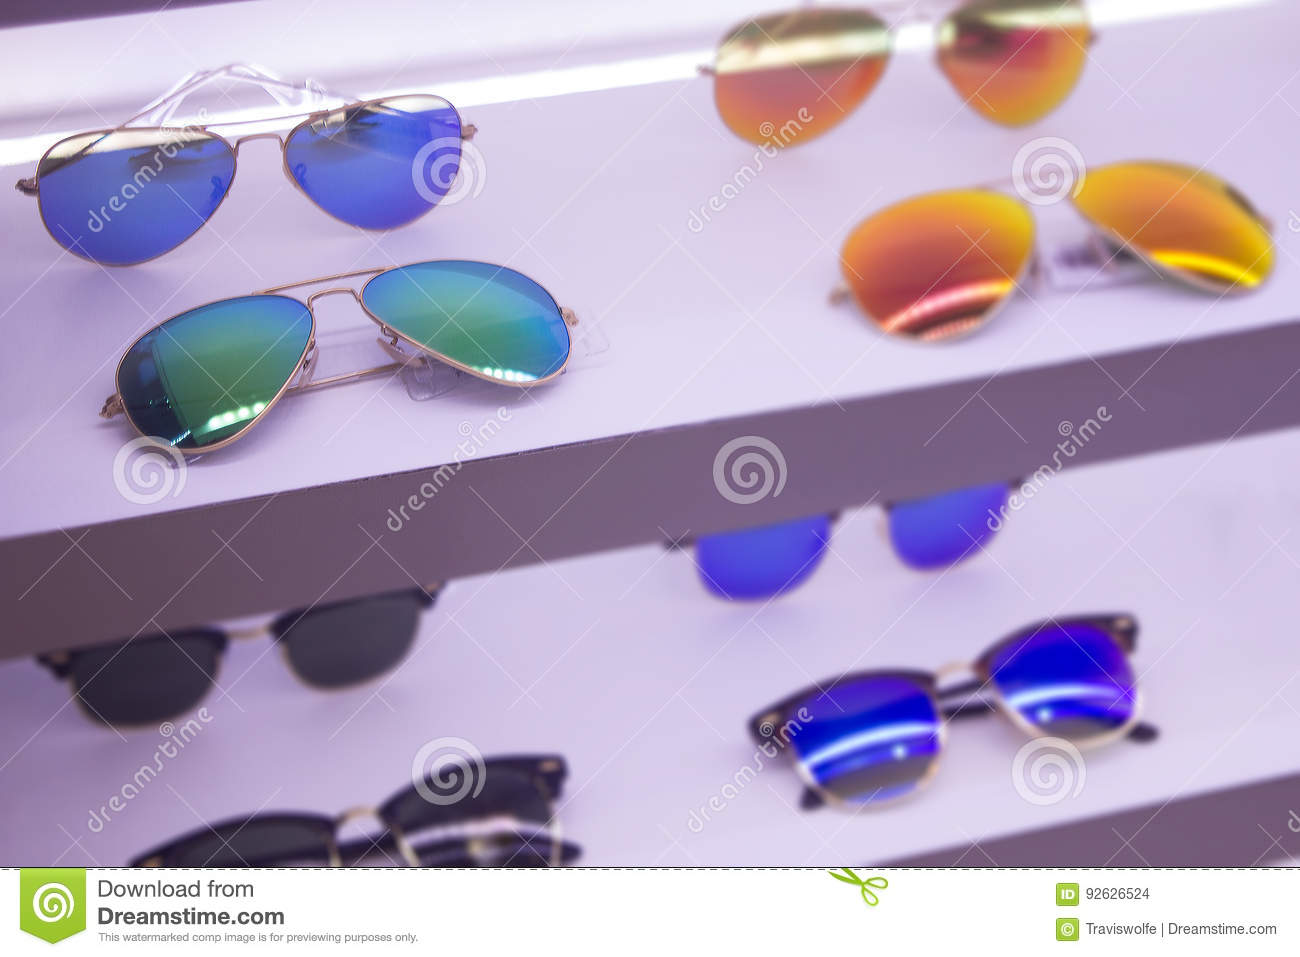 4d08d59a4241 Sunglass shop with sale on high quality lenses on rack. Blue and orange and green  lenses brand name,.